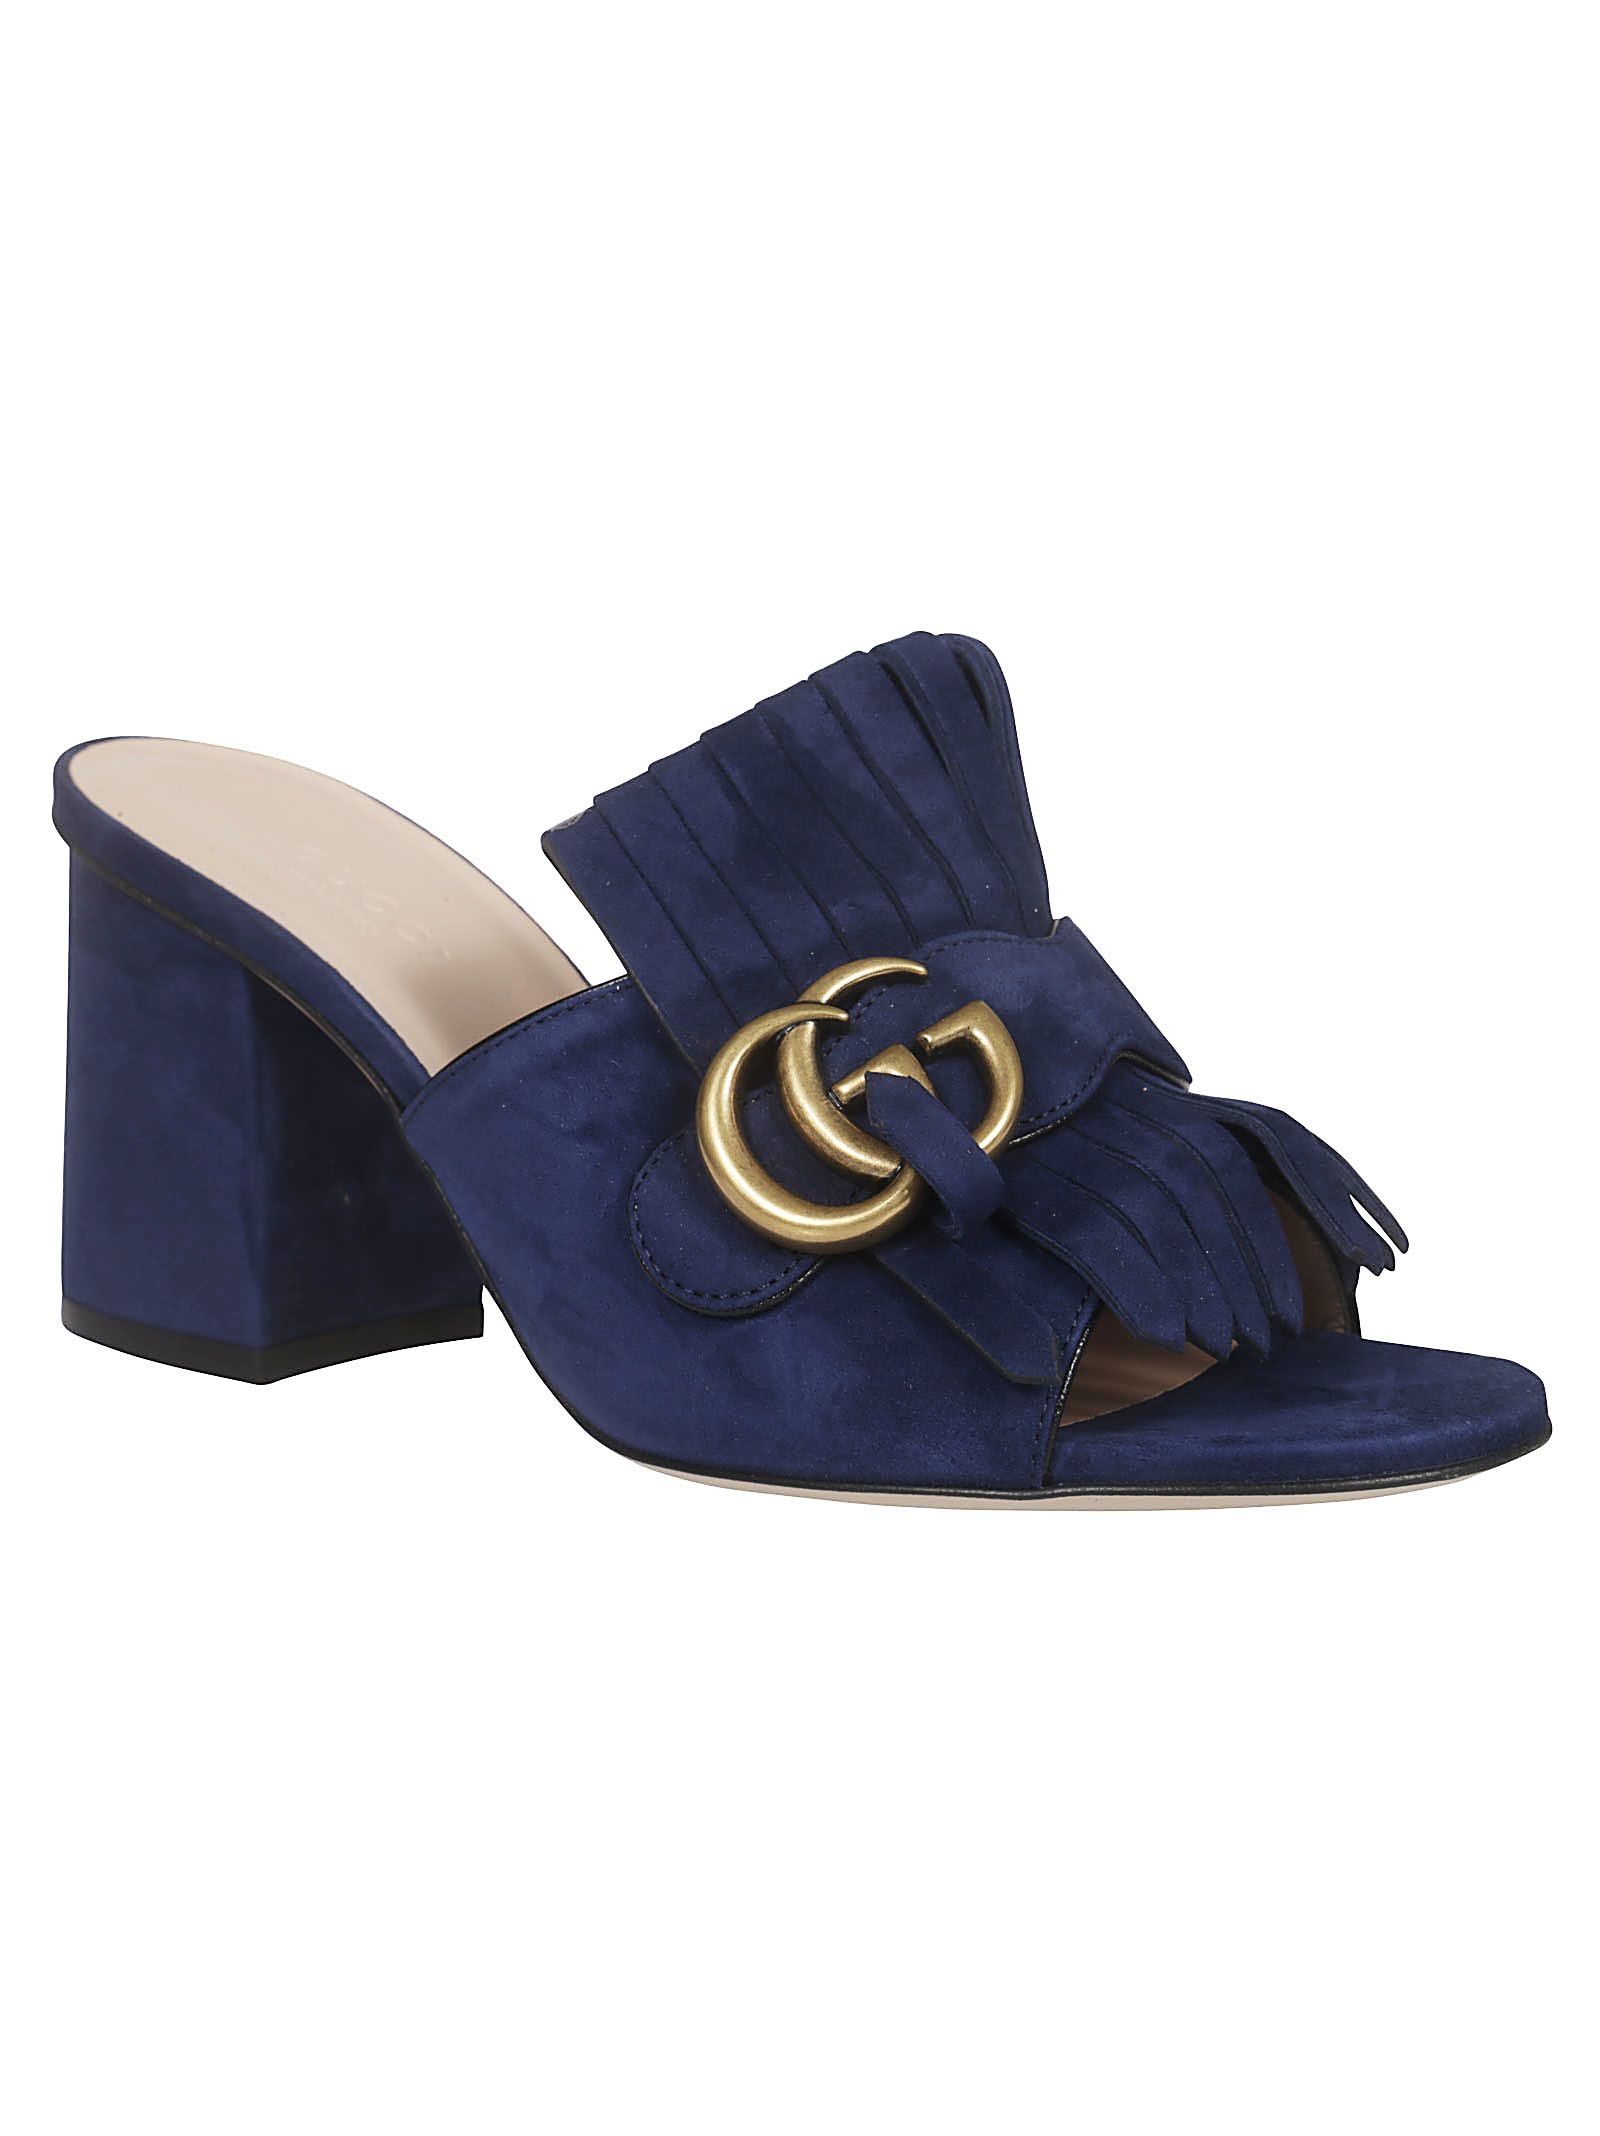 b16a0787820a Gucci Gucci Double G Sandals - Blue Ink - 10920465